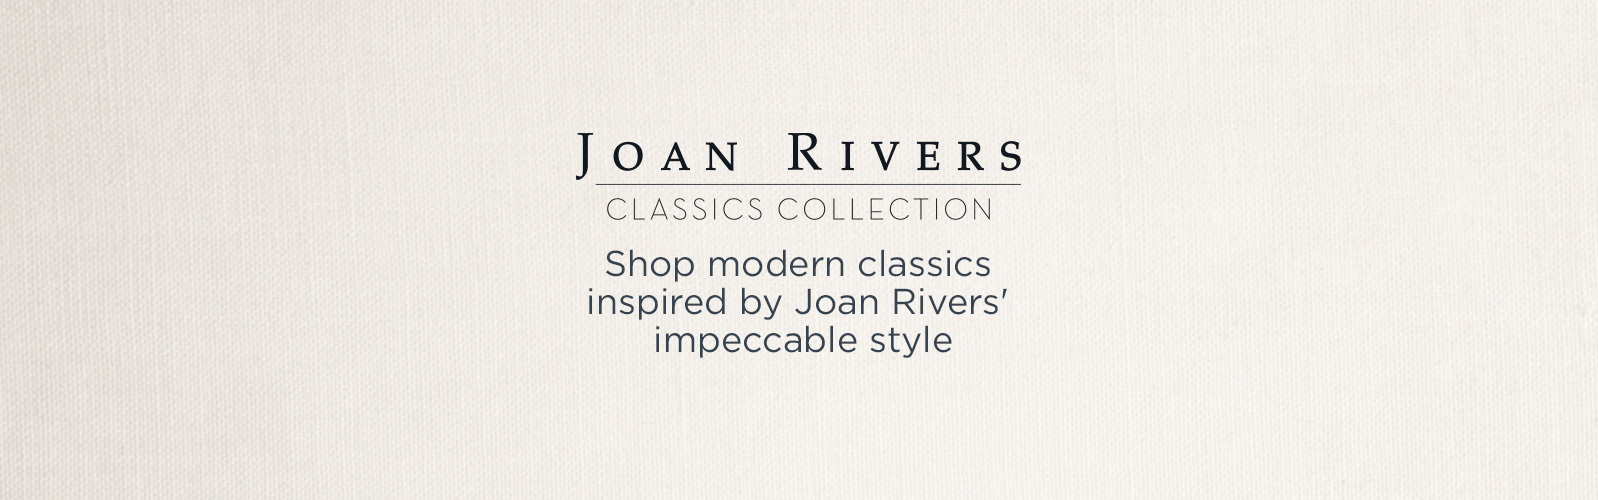 Shop modern classics inspired by Joan Rivers' impeccable style